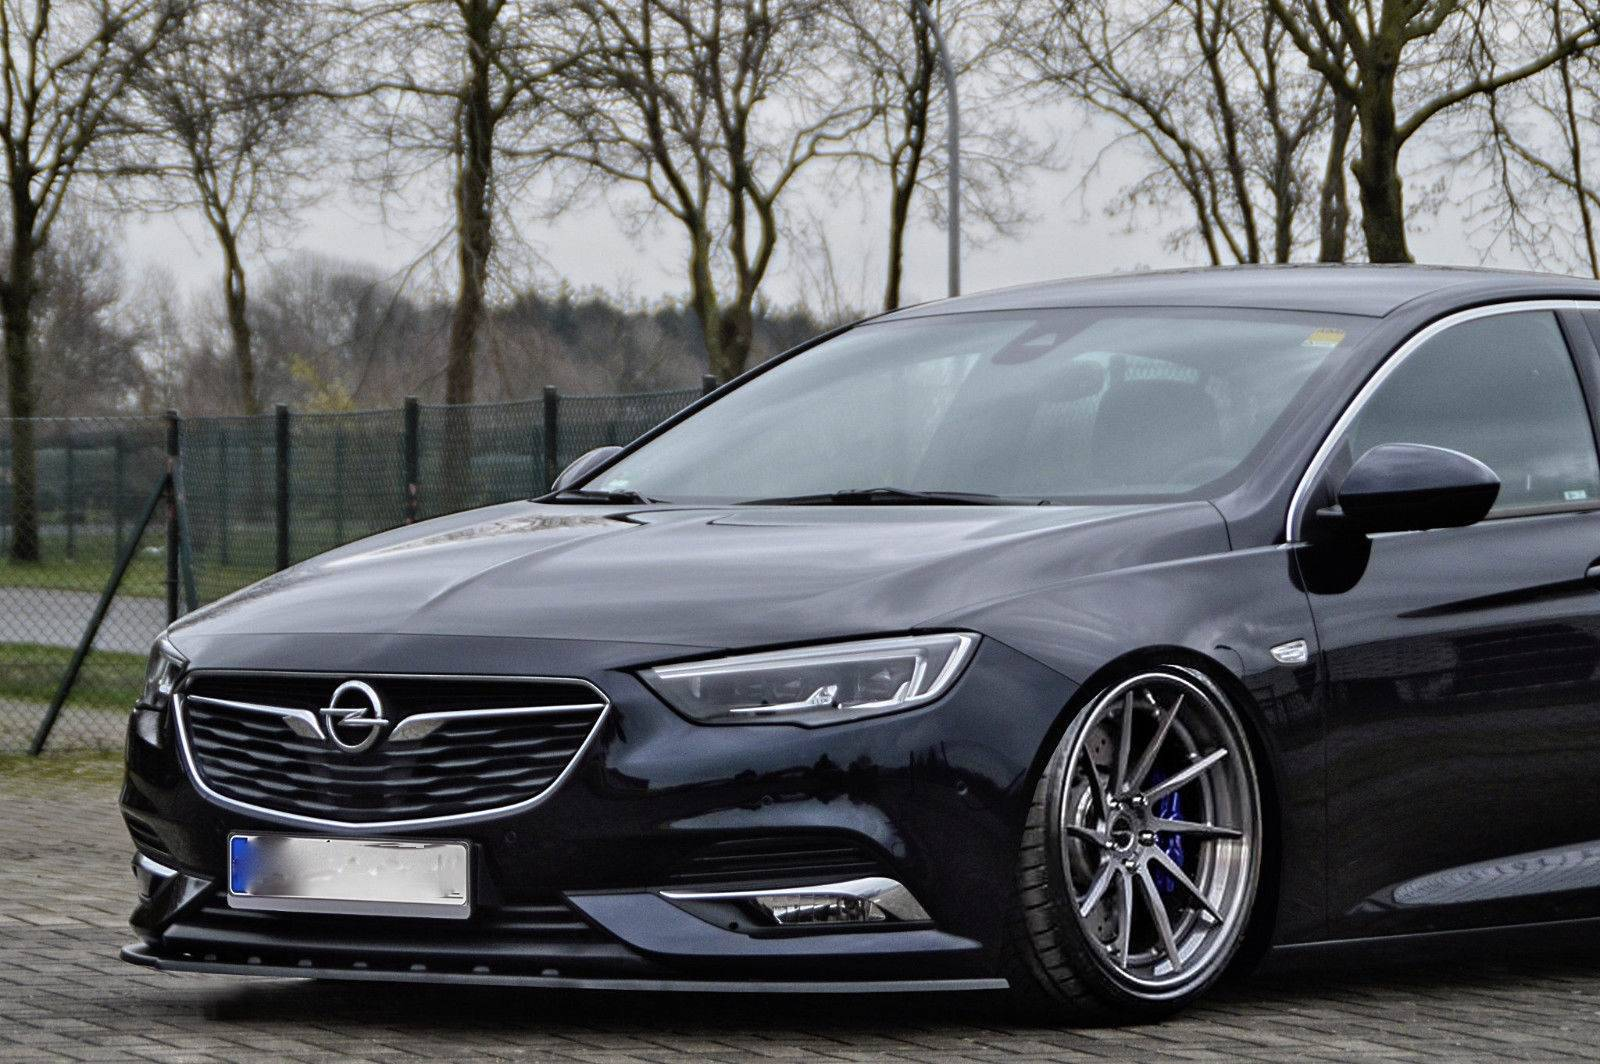 frontspoiler lippe cuplippe opel insignia b tuning kit. Black Bedroom Furniture Sets. Home Design Ideas